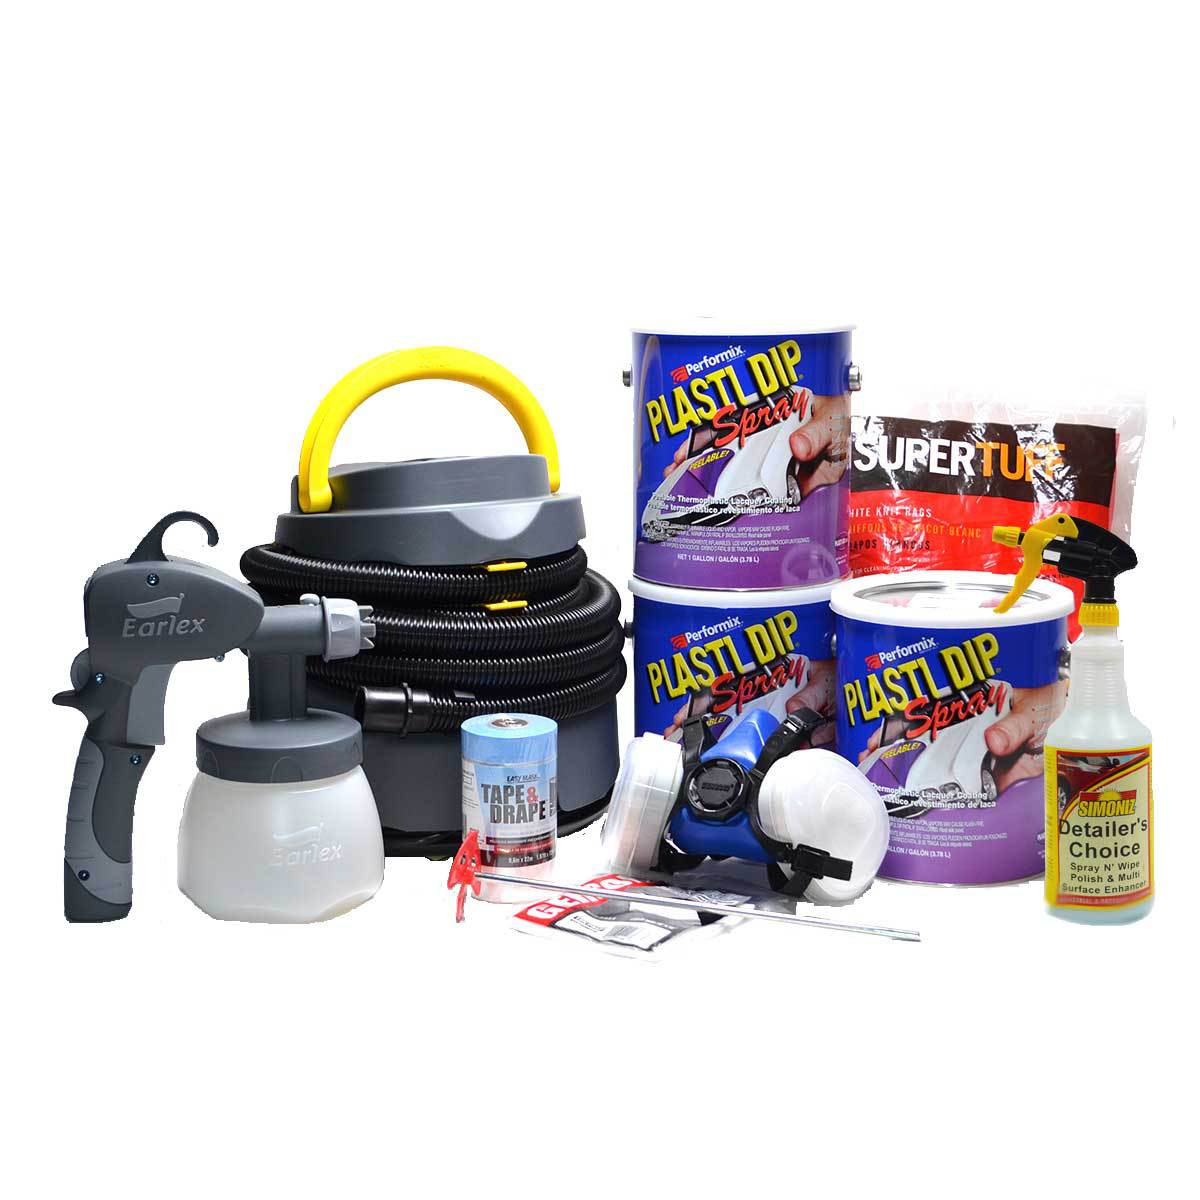 Plasti Dip Spray 3 Gallon Kit - Muscle Colors: Sprayer